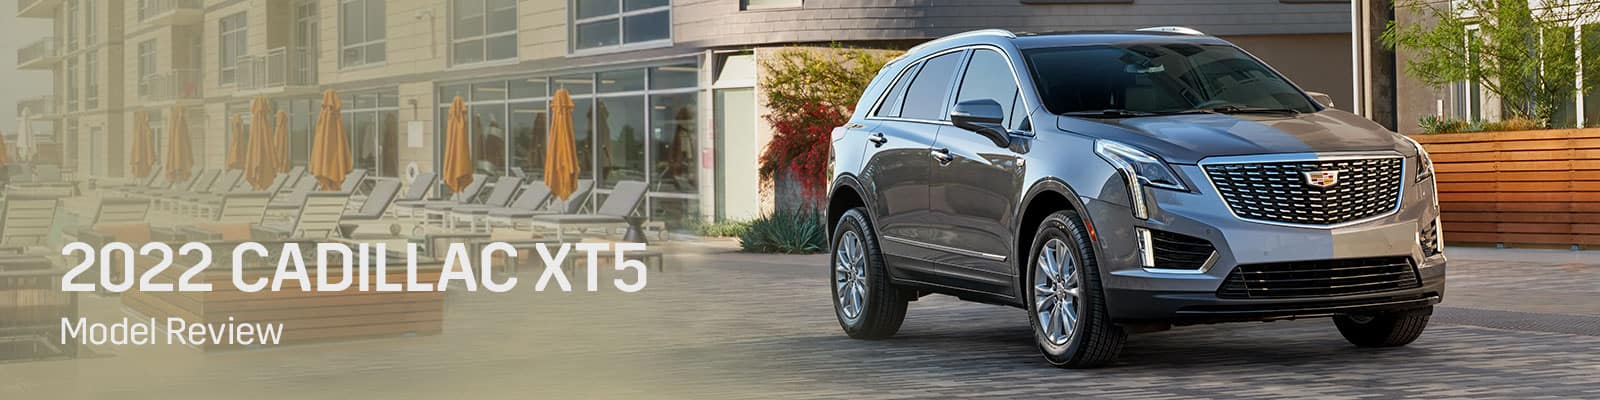 2022 Cadillac XT5 Model Overview - Germain Cadillac of Easton